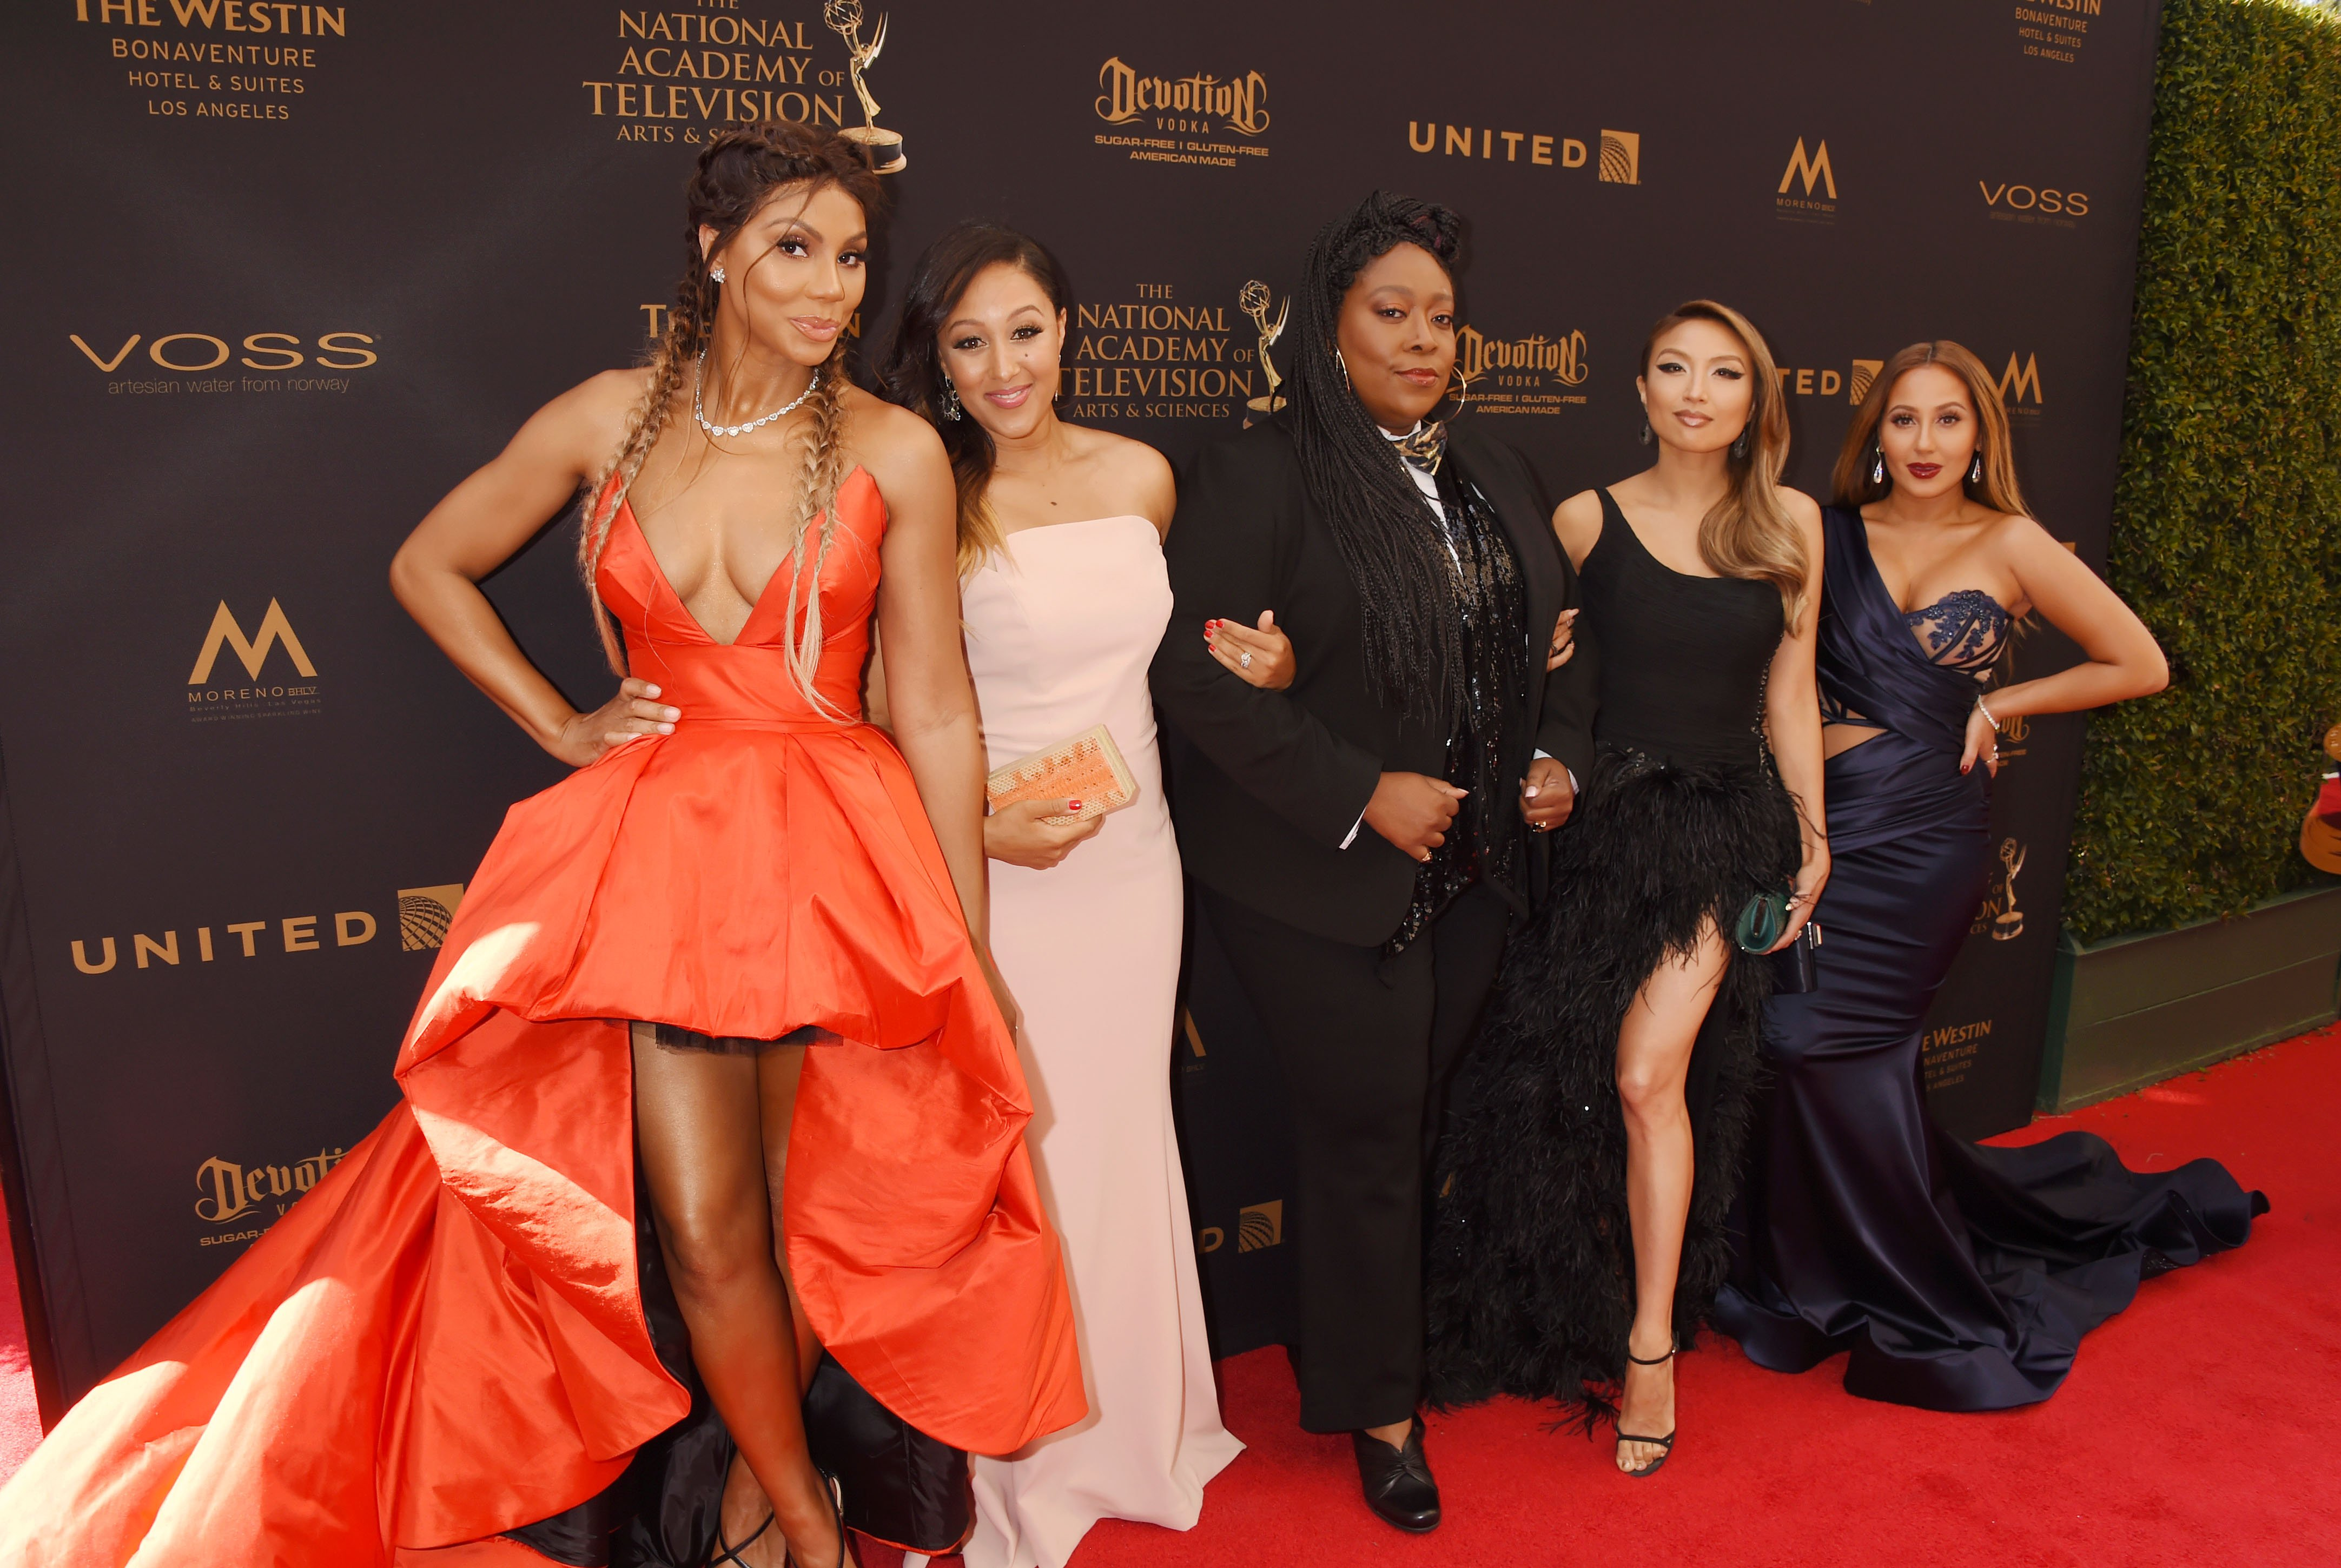 Tamar Braxton, Tamera Mowry Housley, Loni Love, Jeannie Mai and Adrienne Bailon attend the 2016 Daytime Emmy Awards at Westin Bonaventure Hotel on May 1, 2016 in Los Angeles, California. | Photo: Getty Images